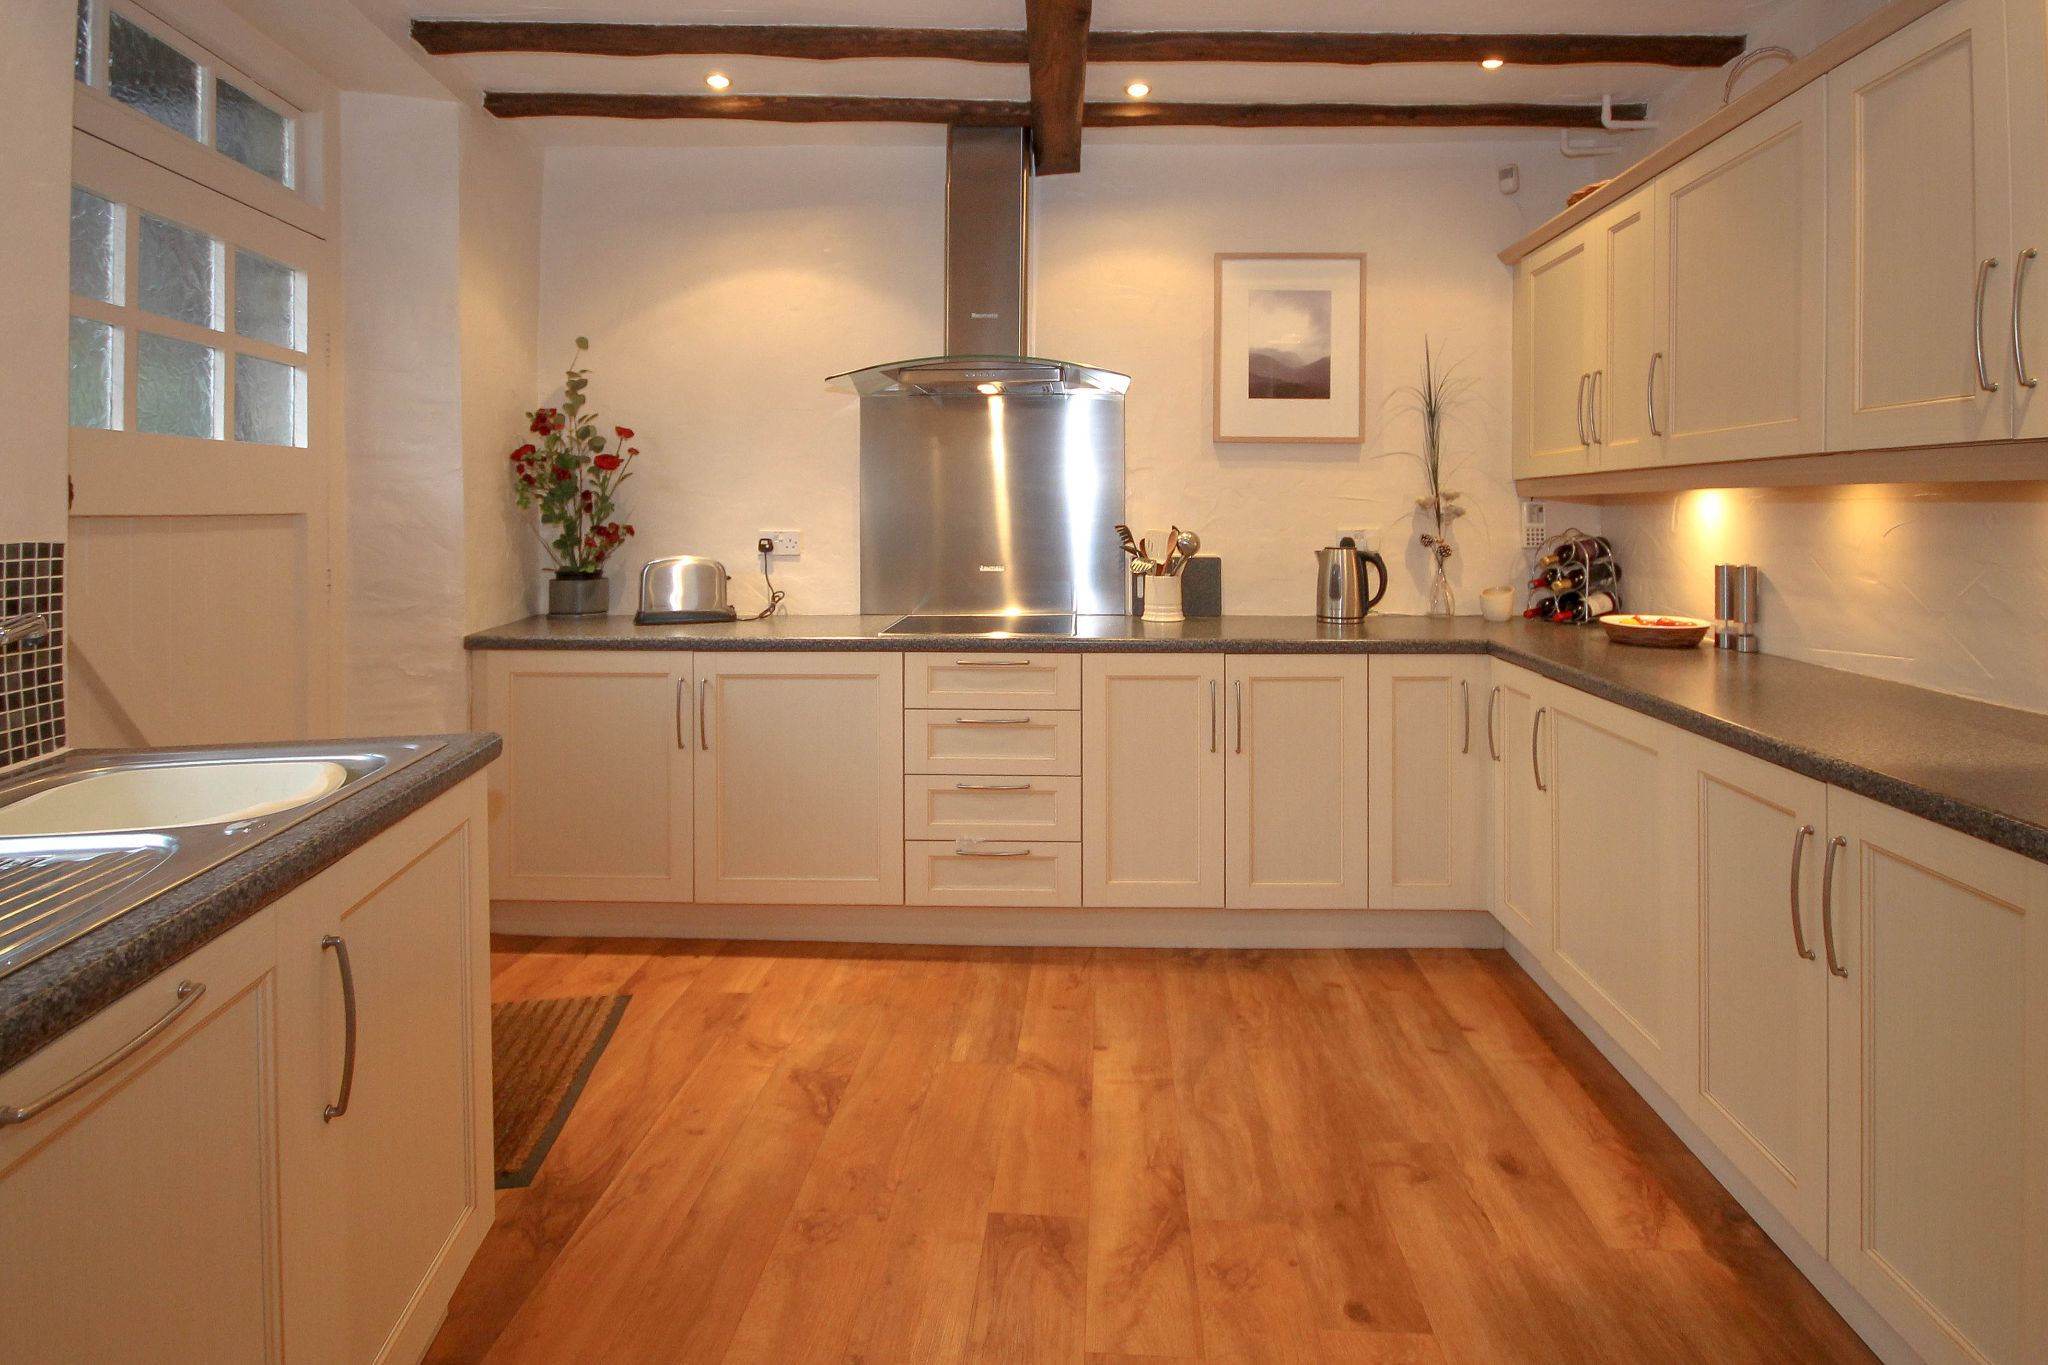 4 bedroom barn conversion house For Sale in Bolton - Property photograph